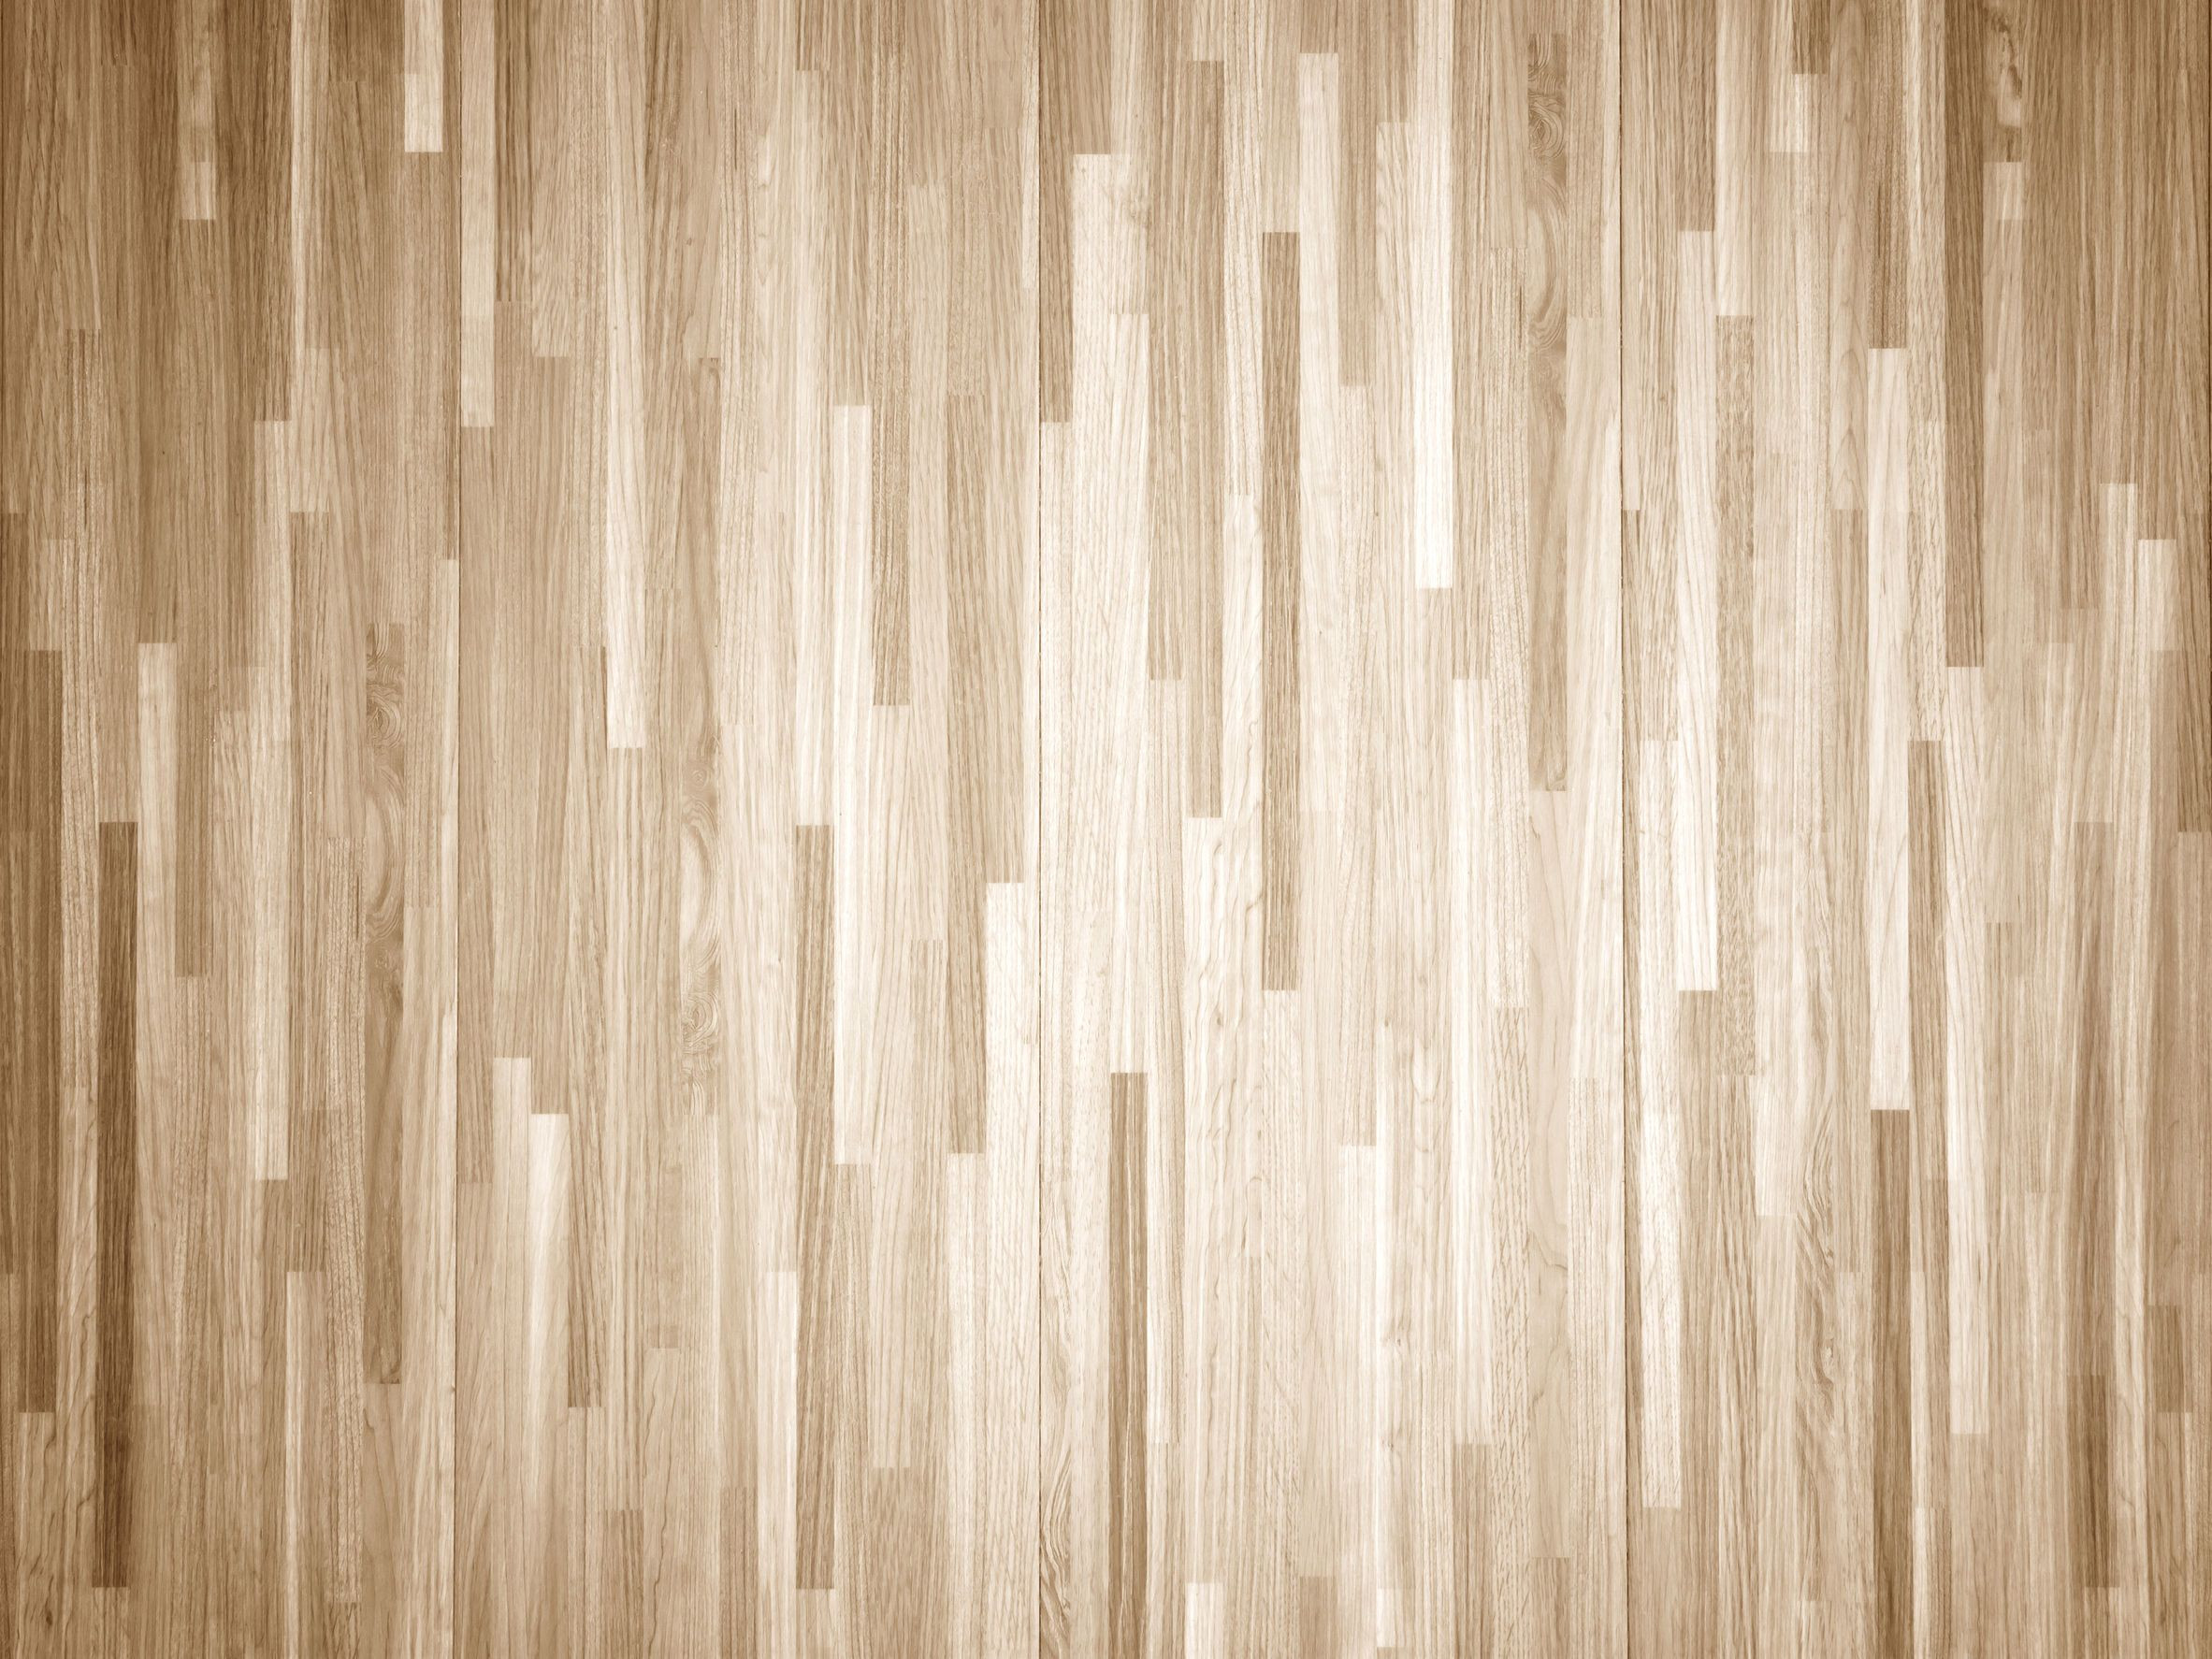 average cost of sanding hardwood floors of how to chemically strip wood floors woodfloordoctor com with regard to you